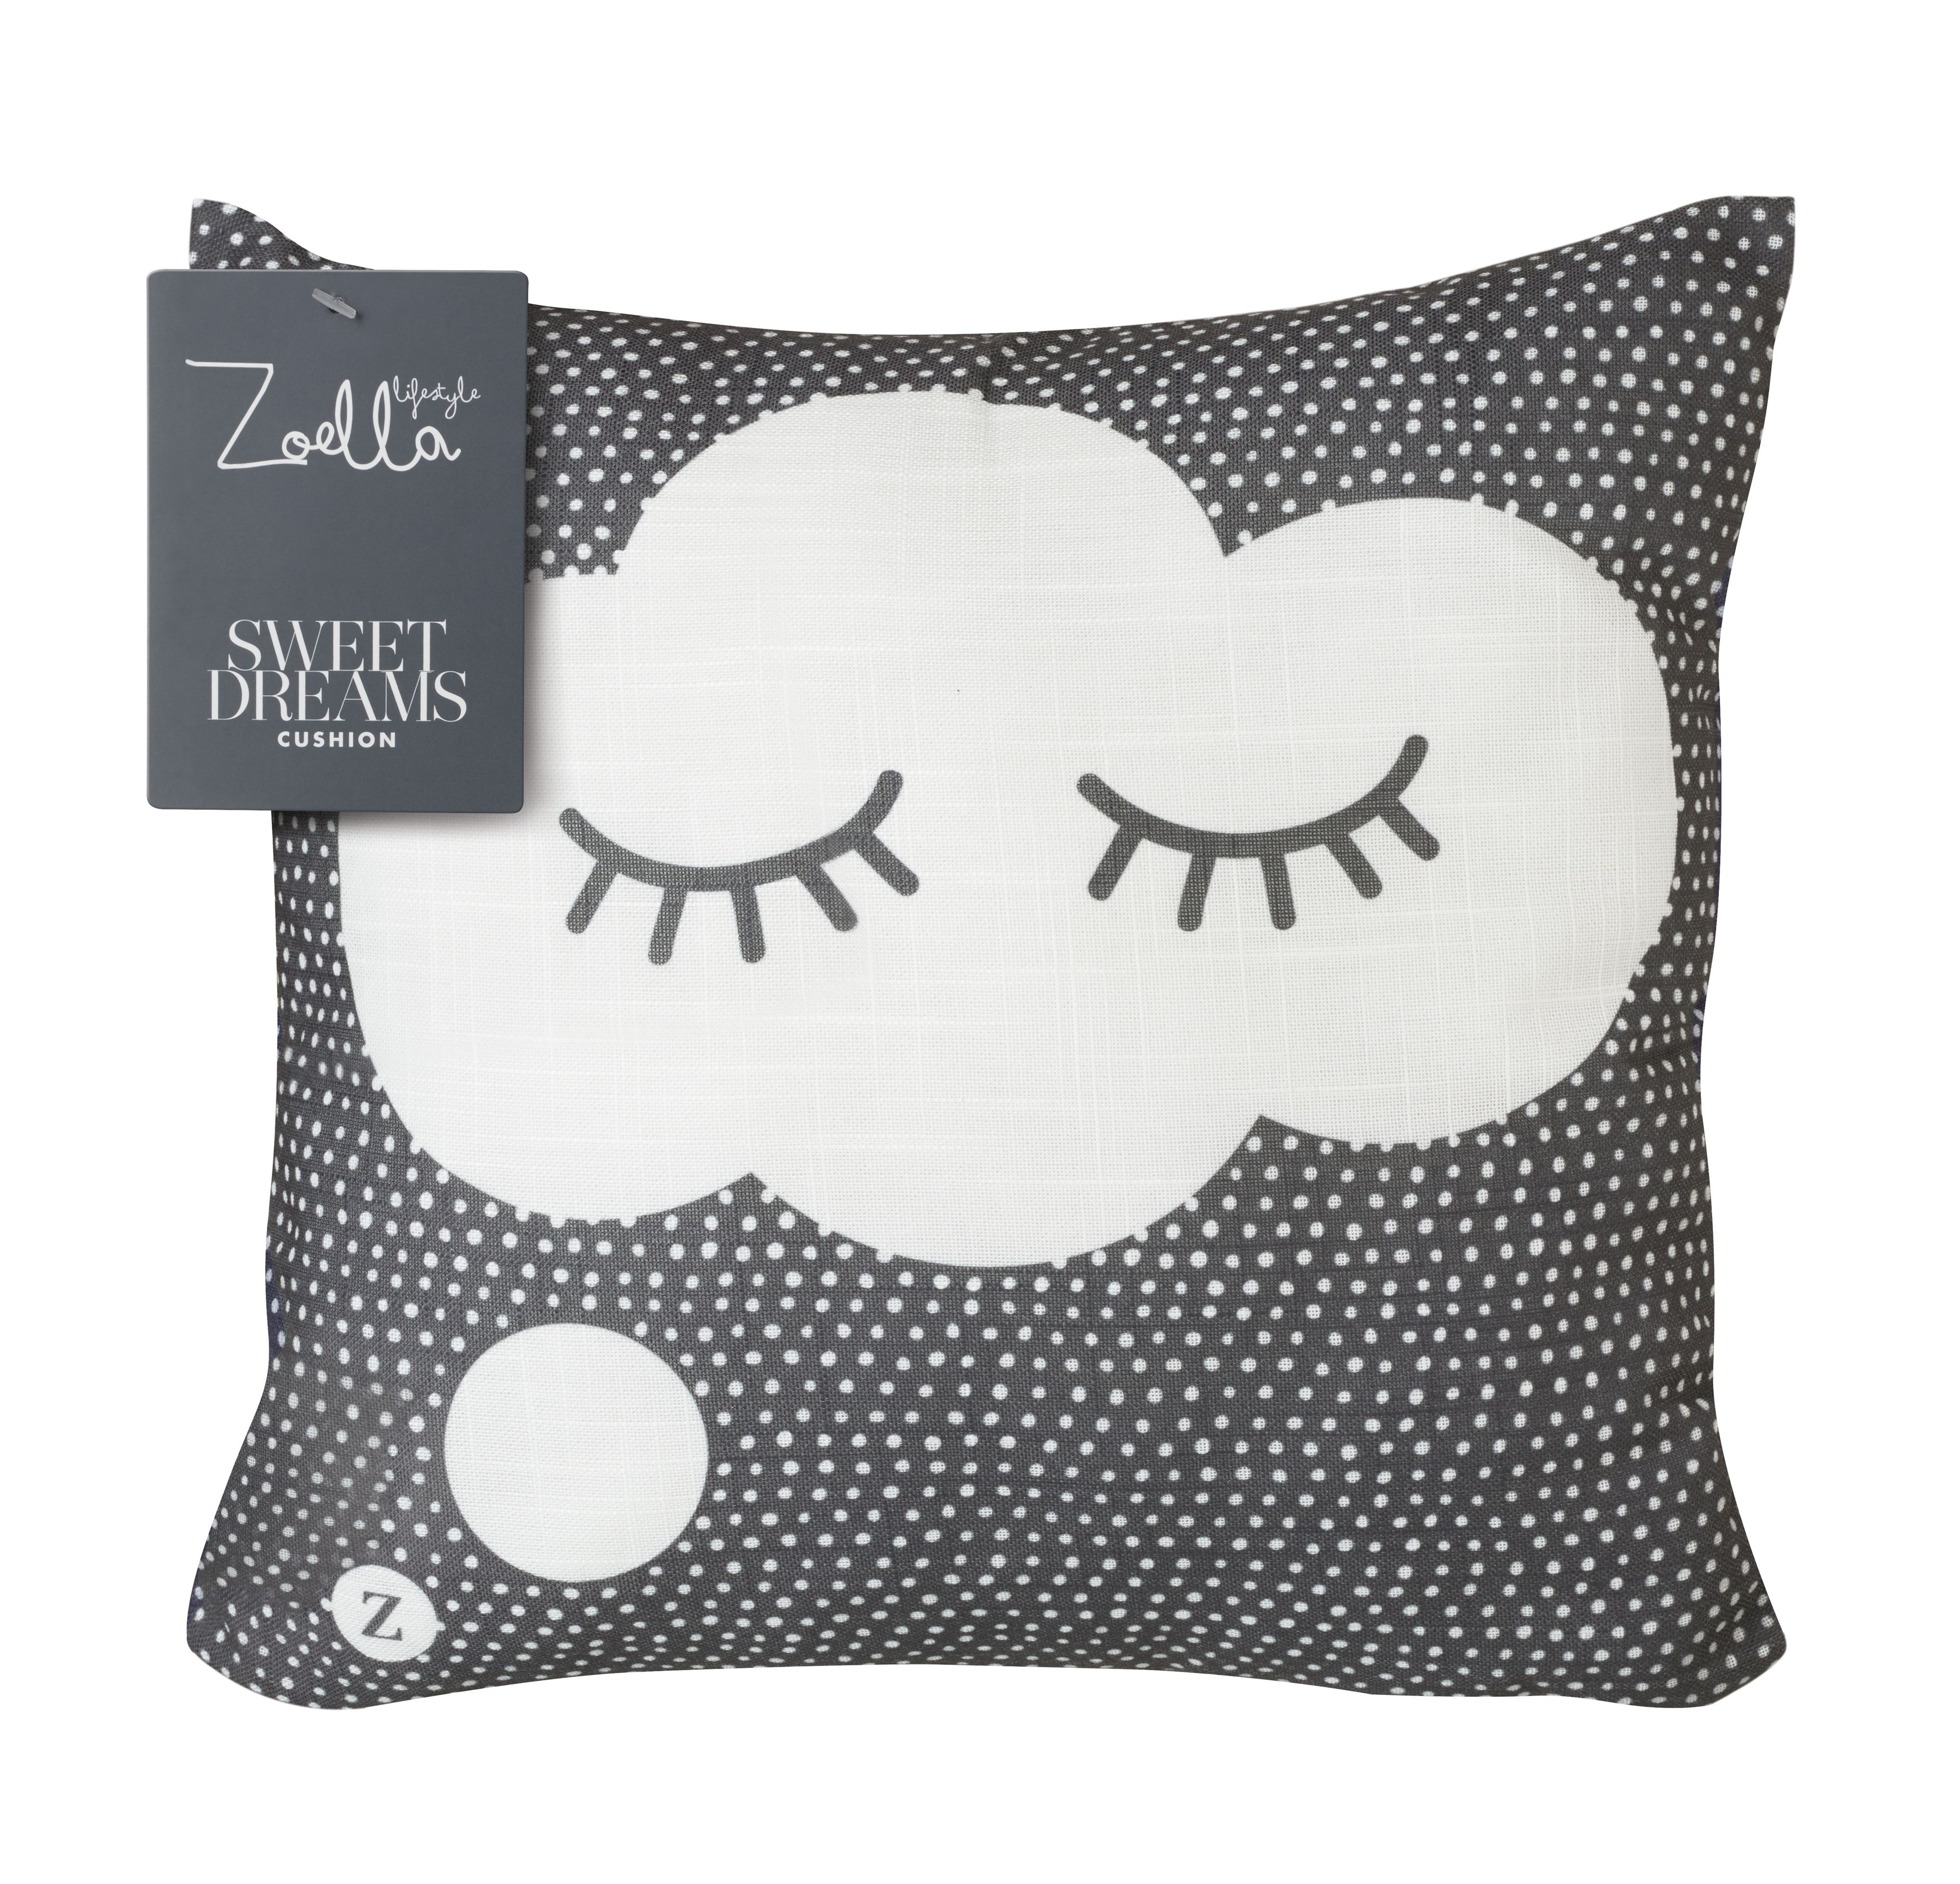 Christmas ornament black and white 187 home design 2017 - Zoella Sweet Dreams Cushion